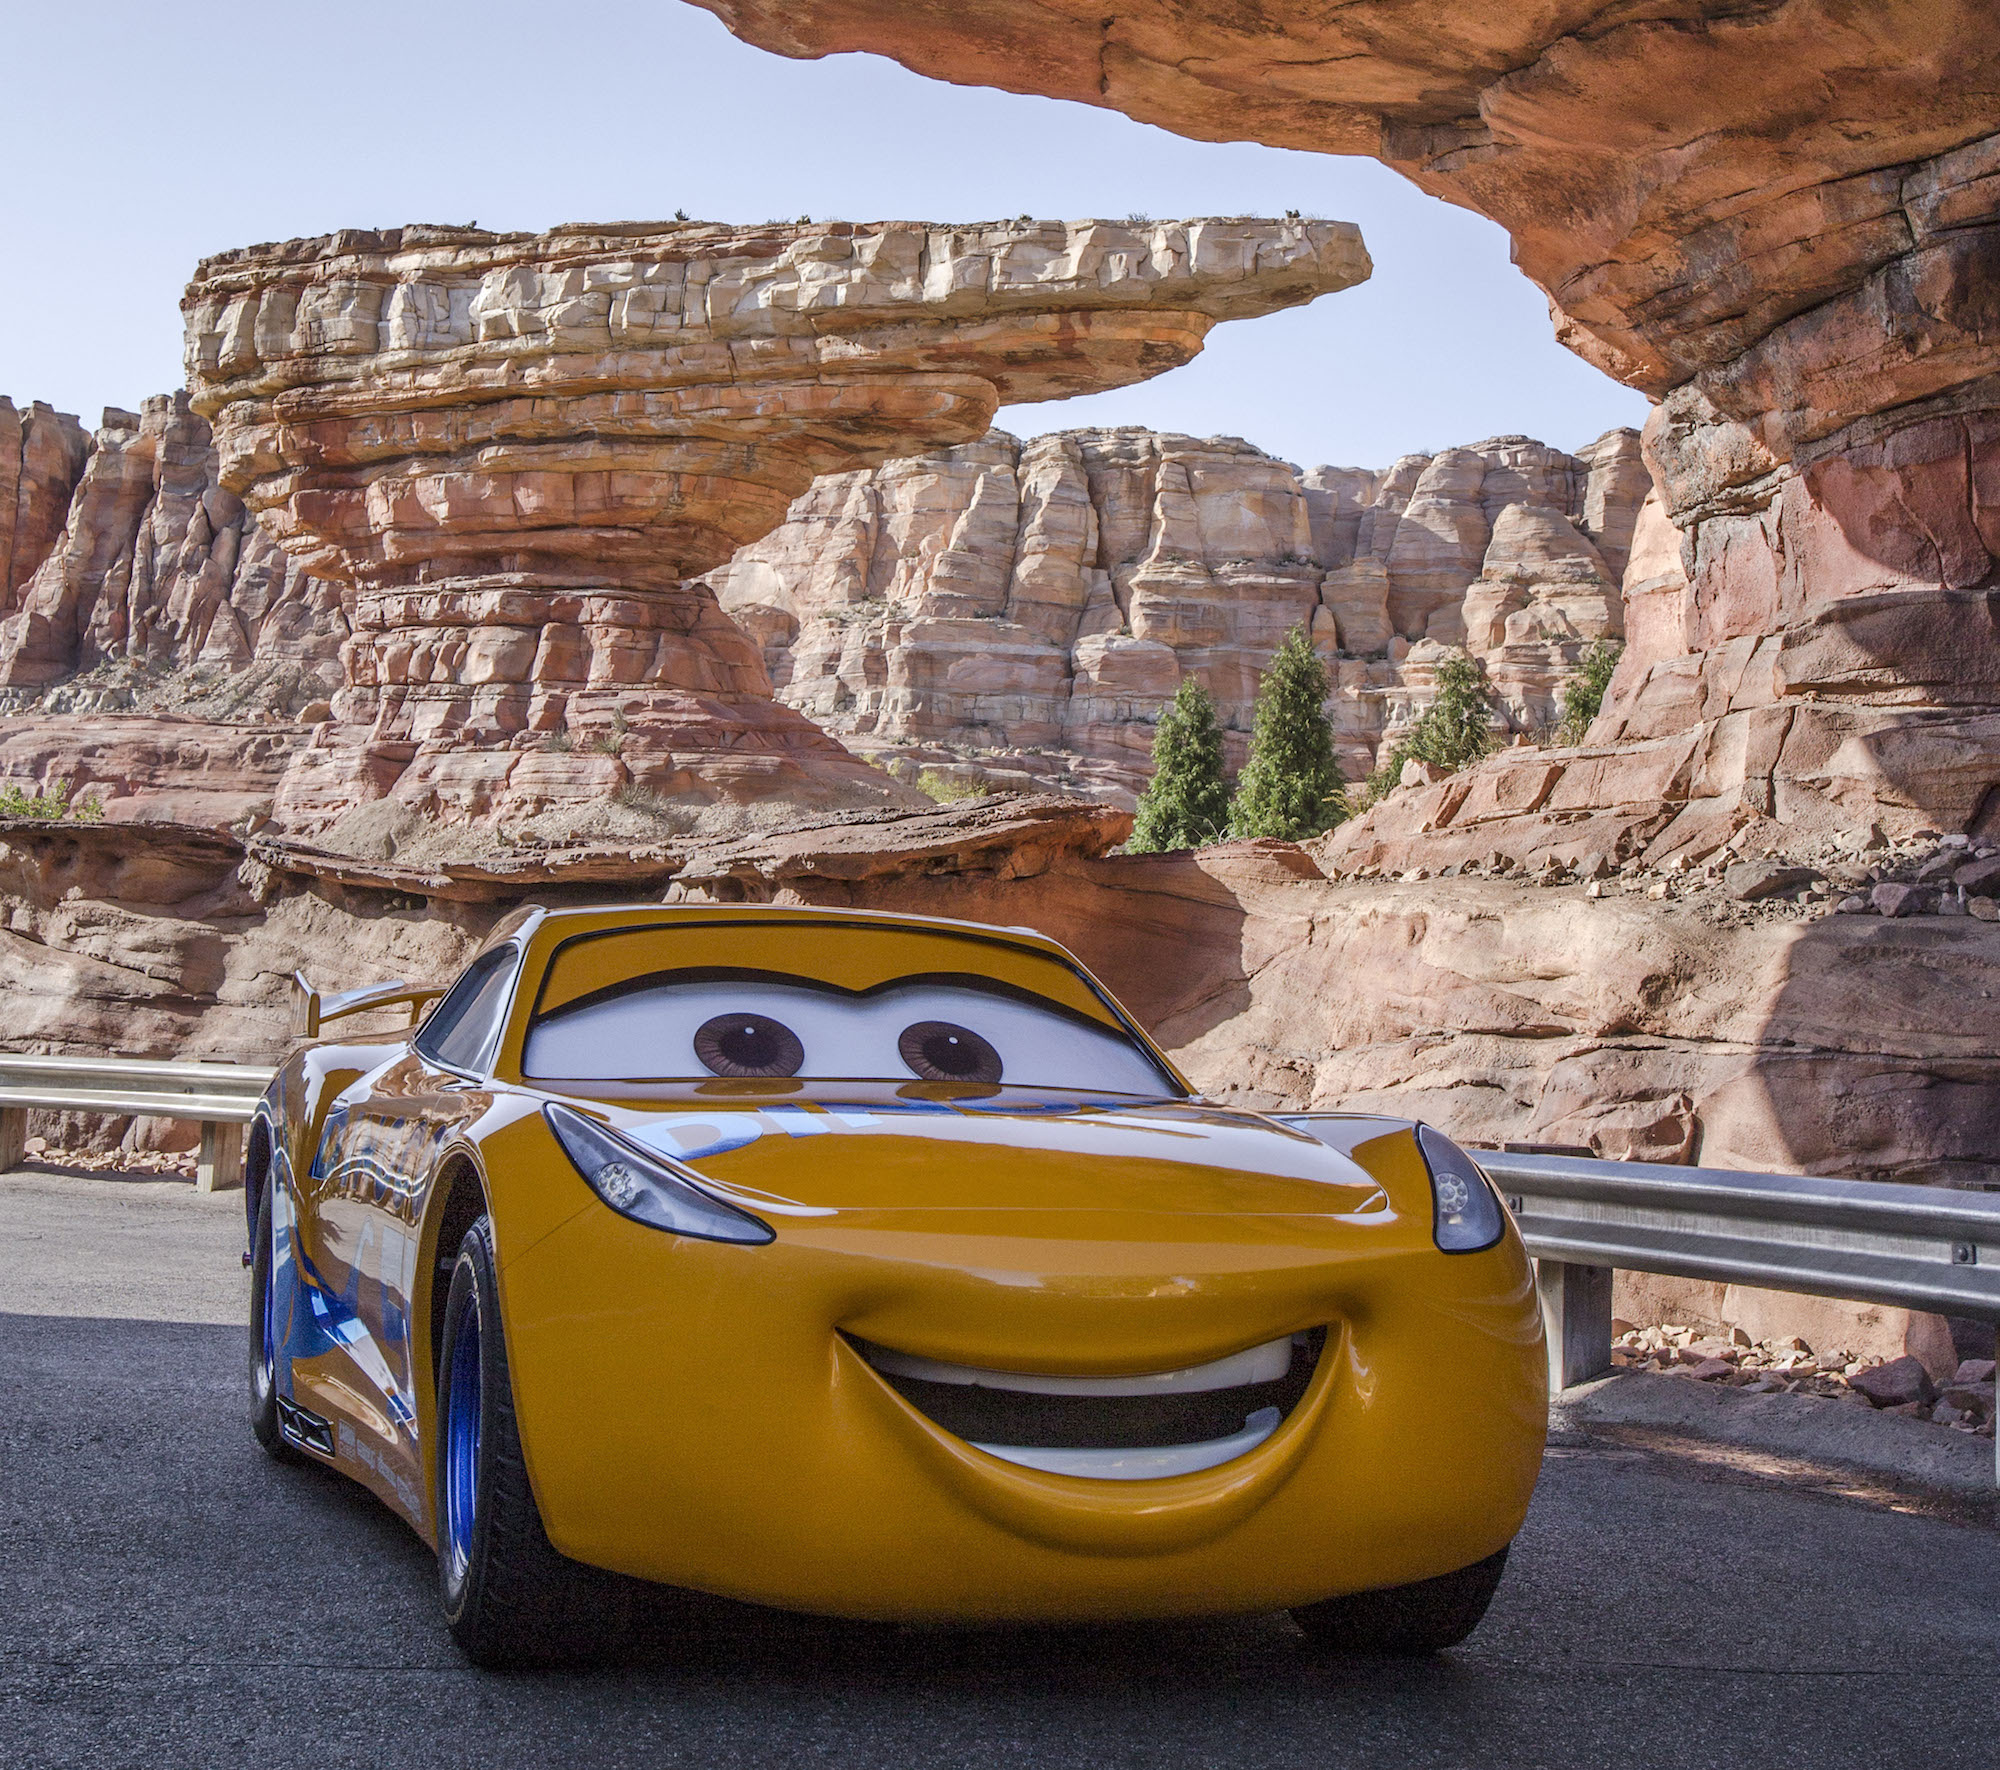 Cruz Ramirez at Disneyland in Cars Land